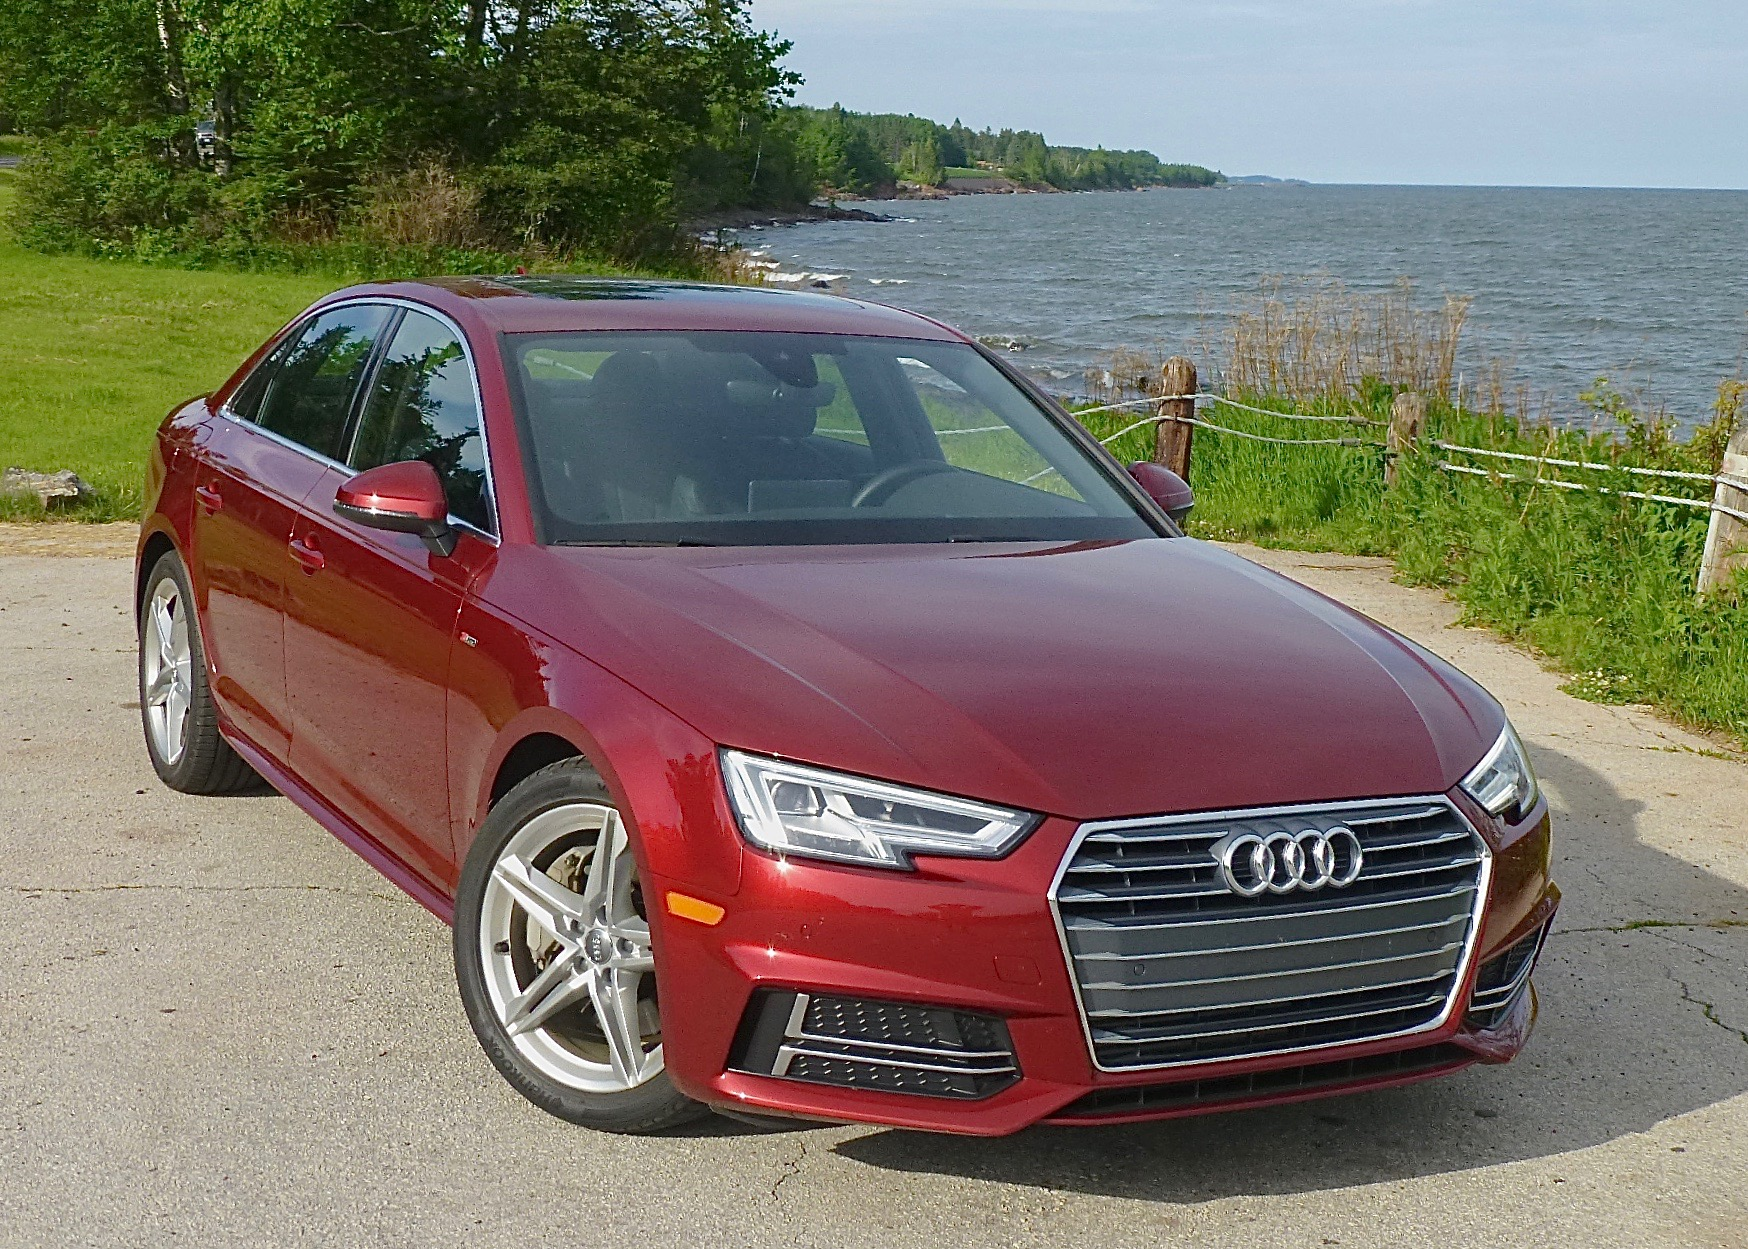 The new A4 price reflects its new stature, technology.